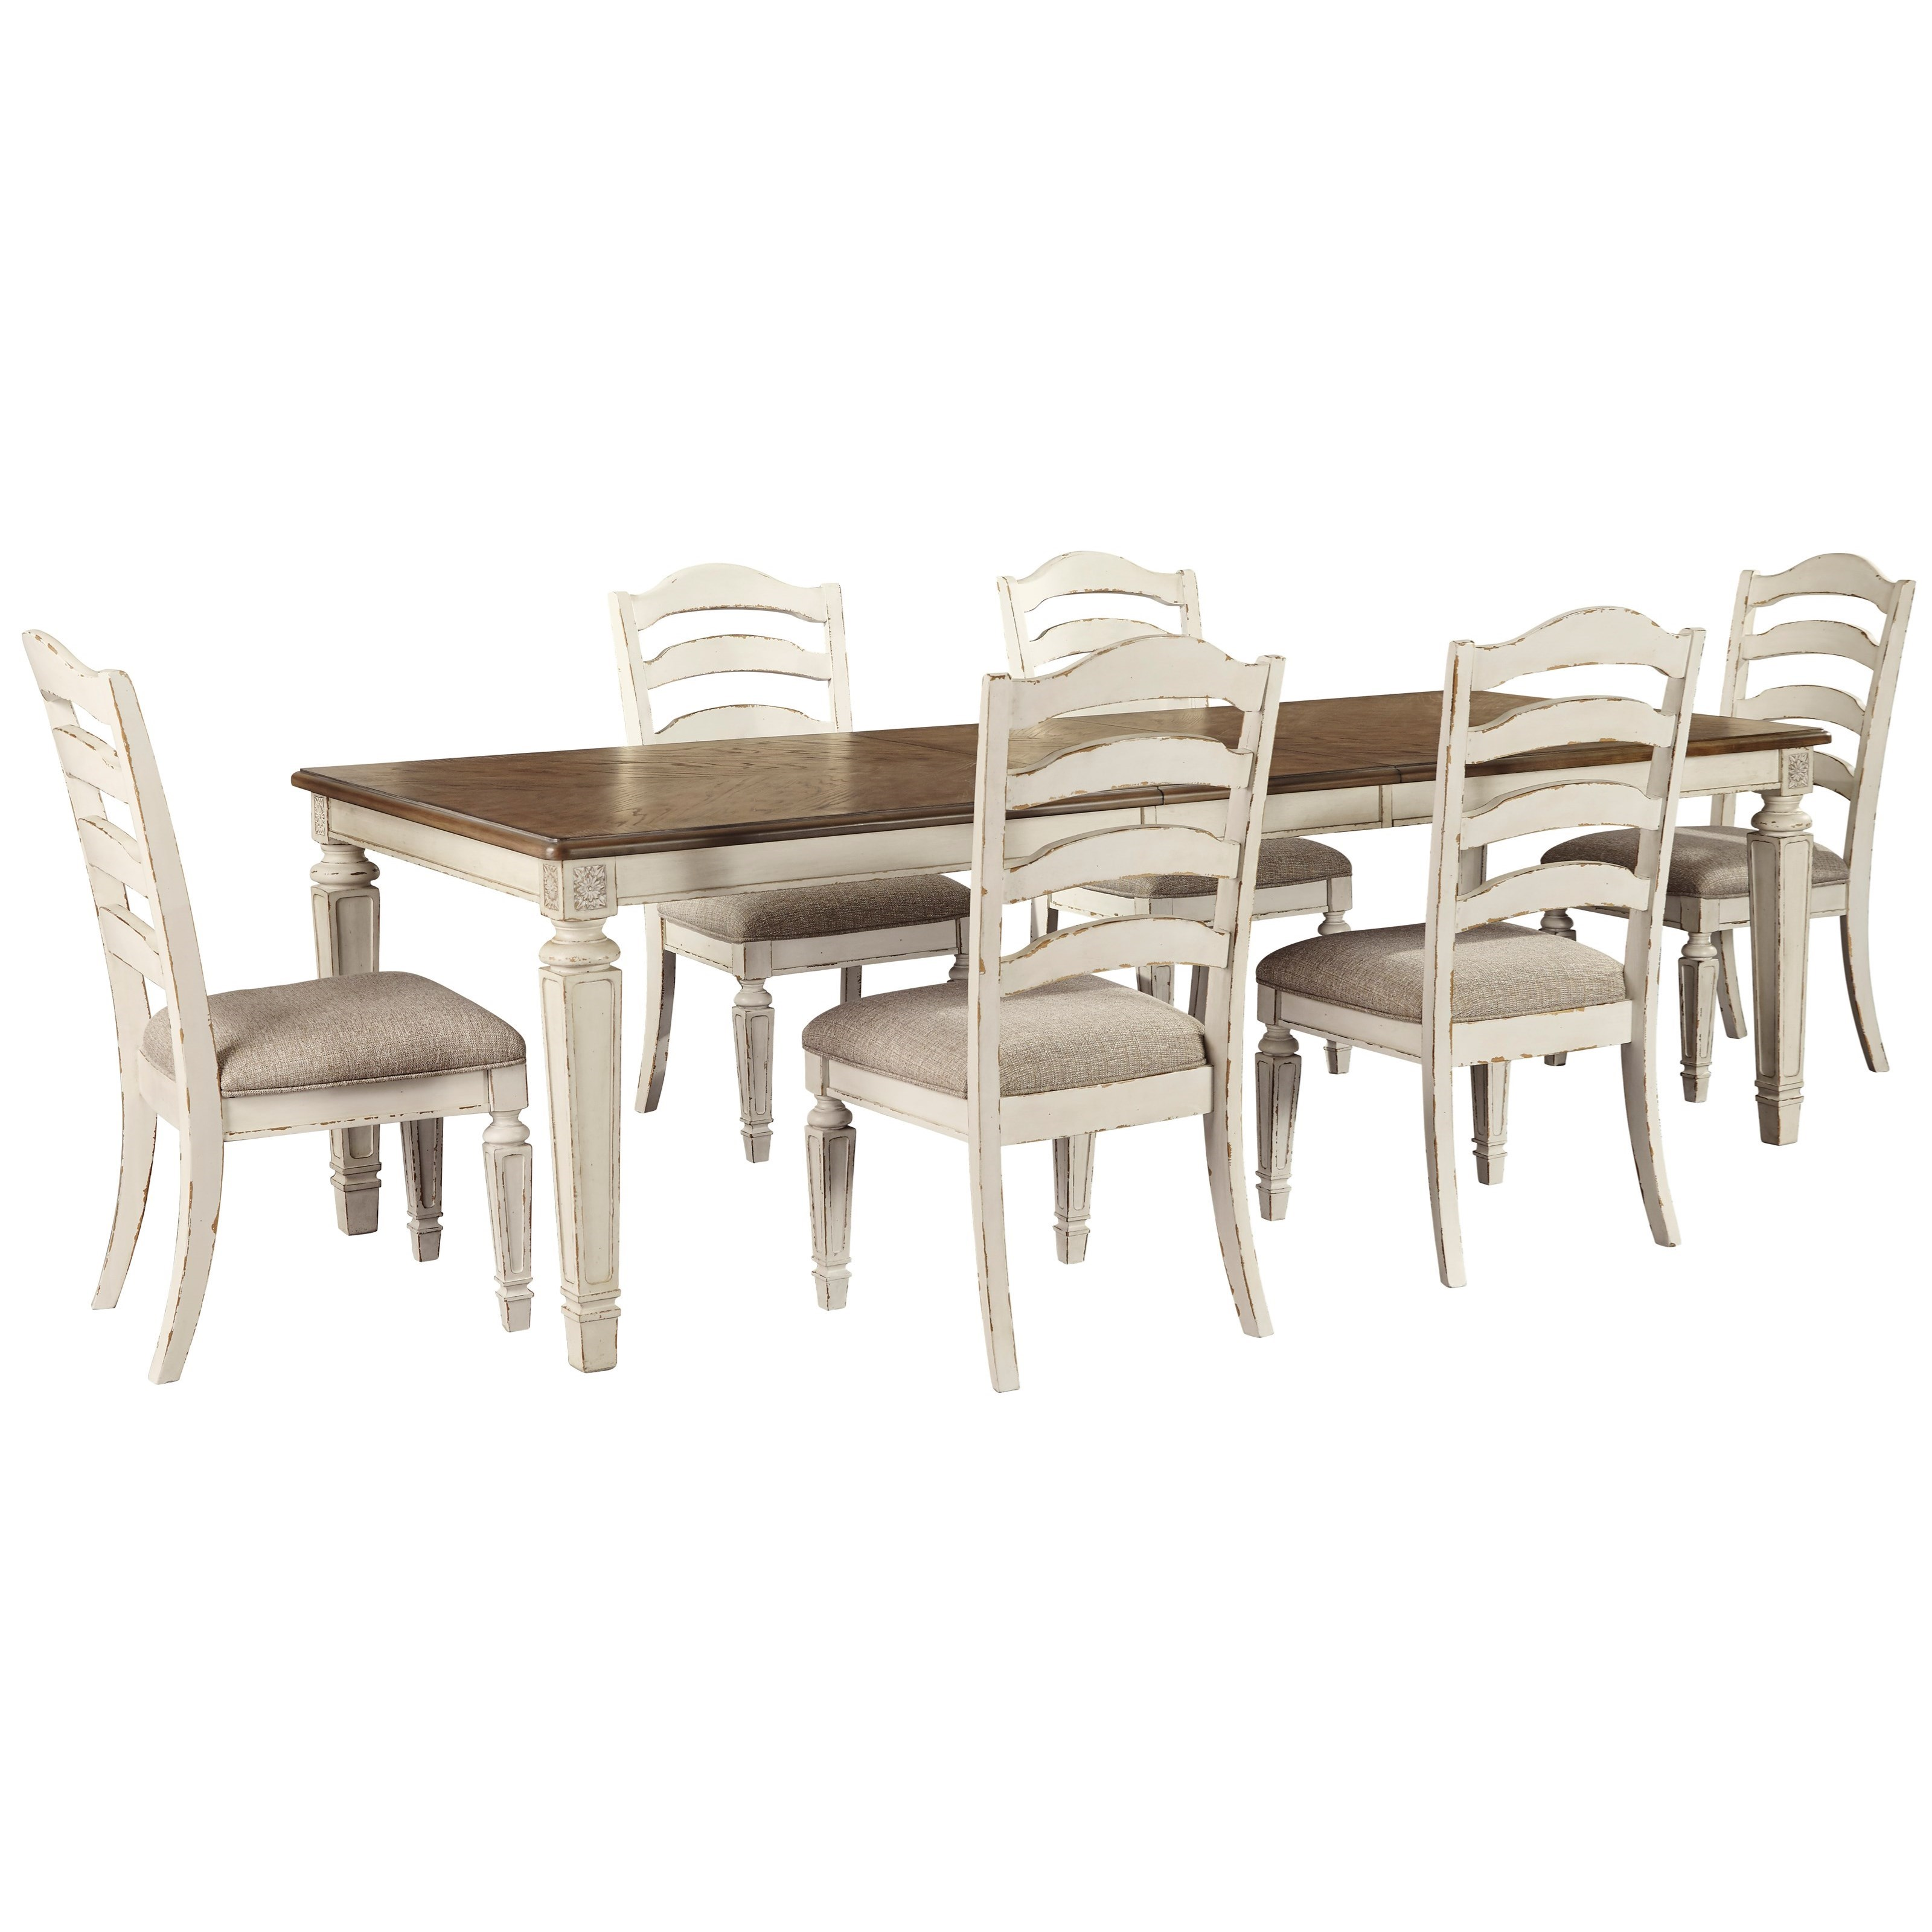 Realyn 7 Piece Dining Set by Signature Design by Ashley at HomeWorld Furniture